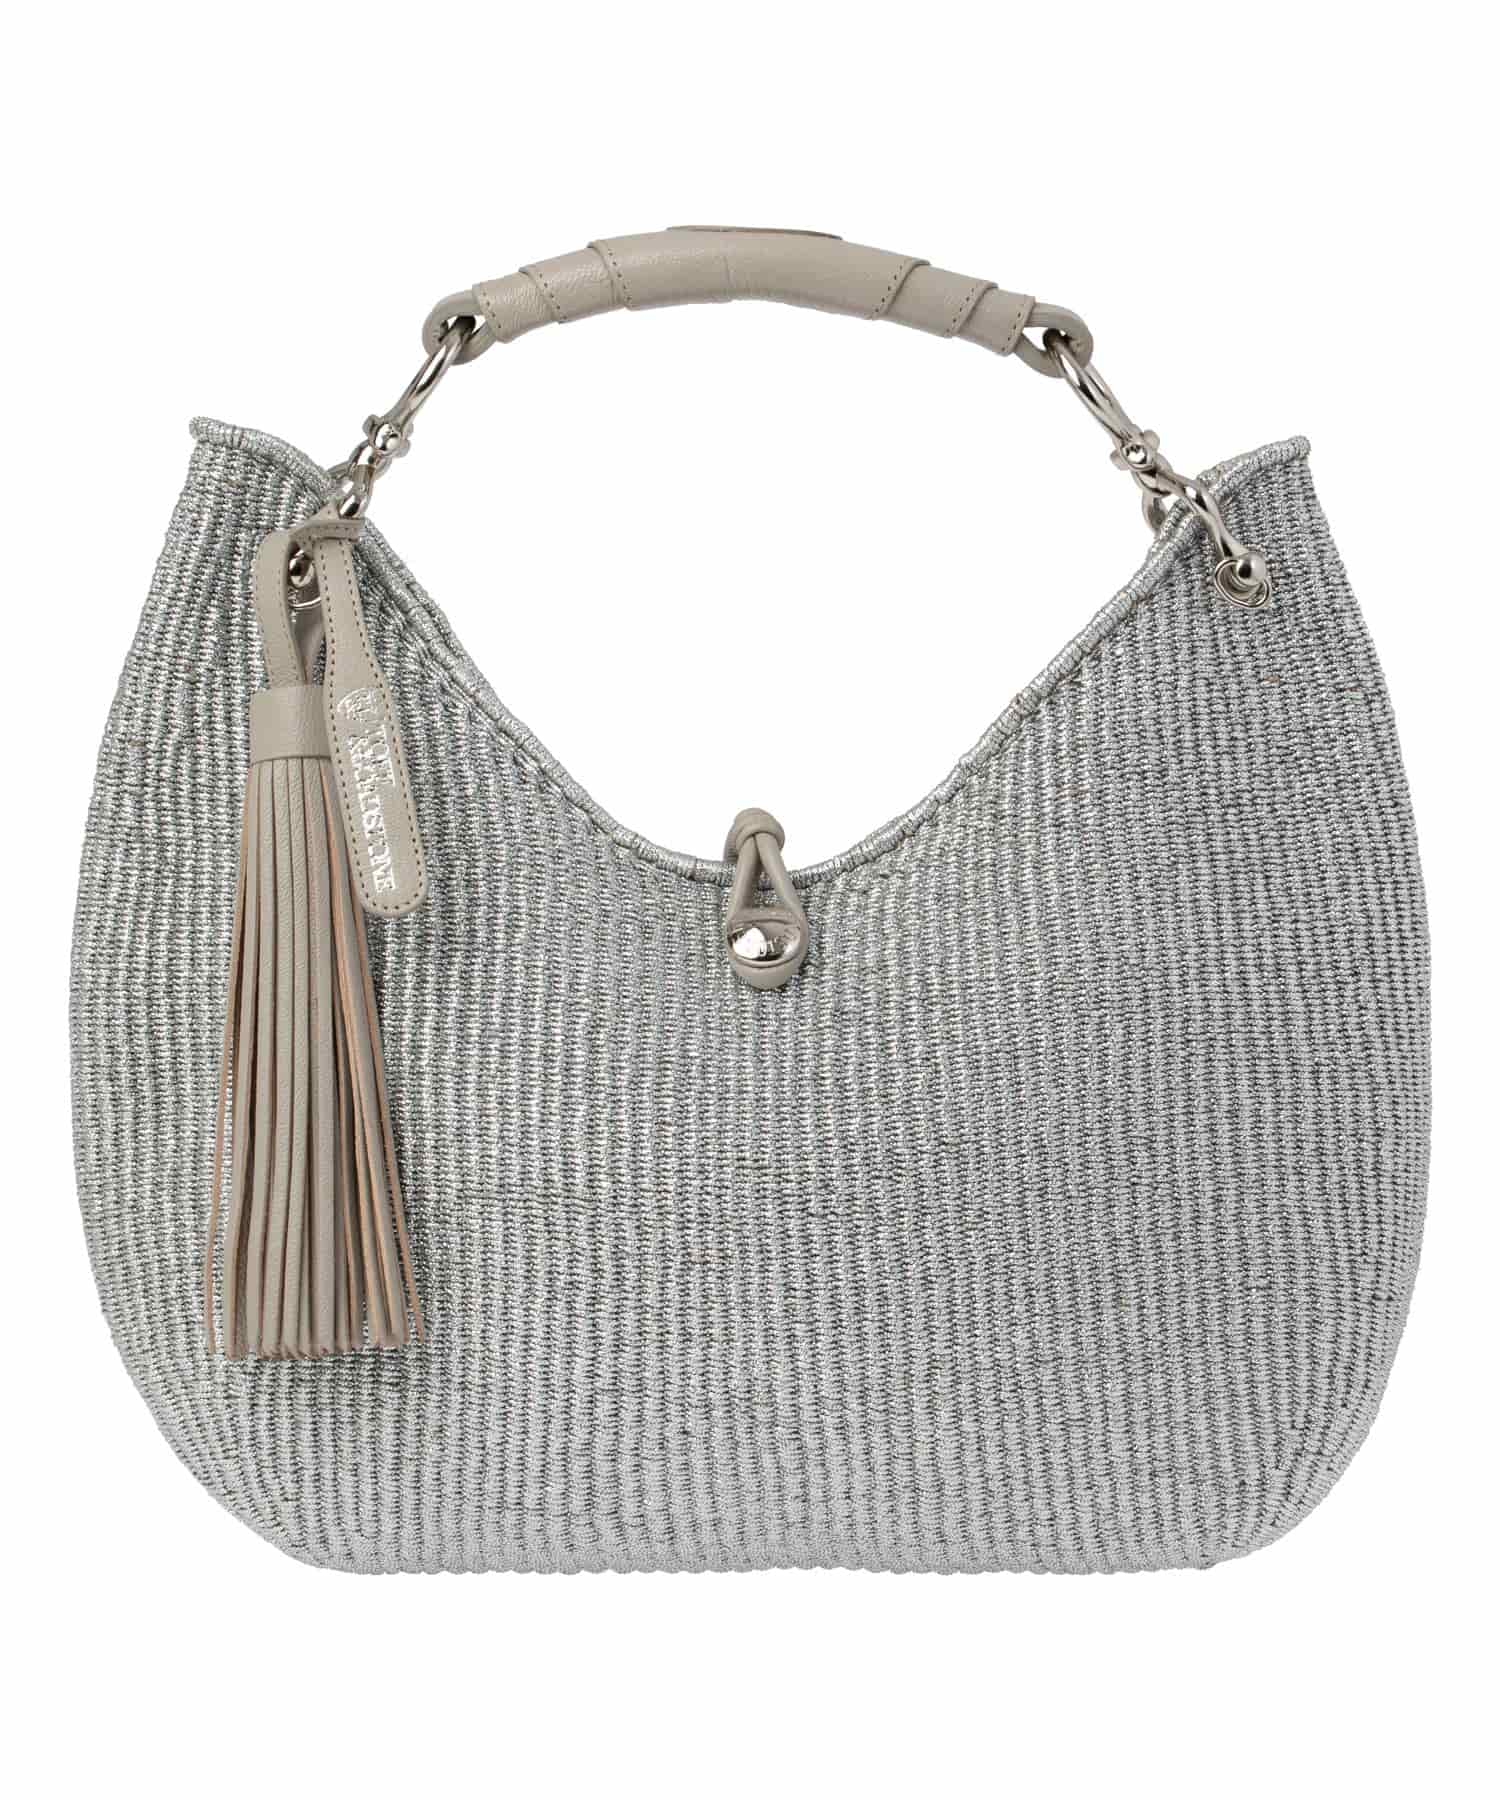 Hybrid Basket Metallic(Onehandle Tote)